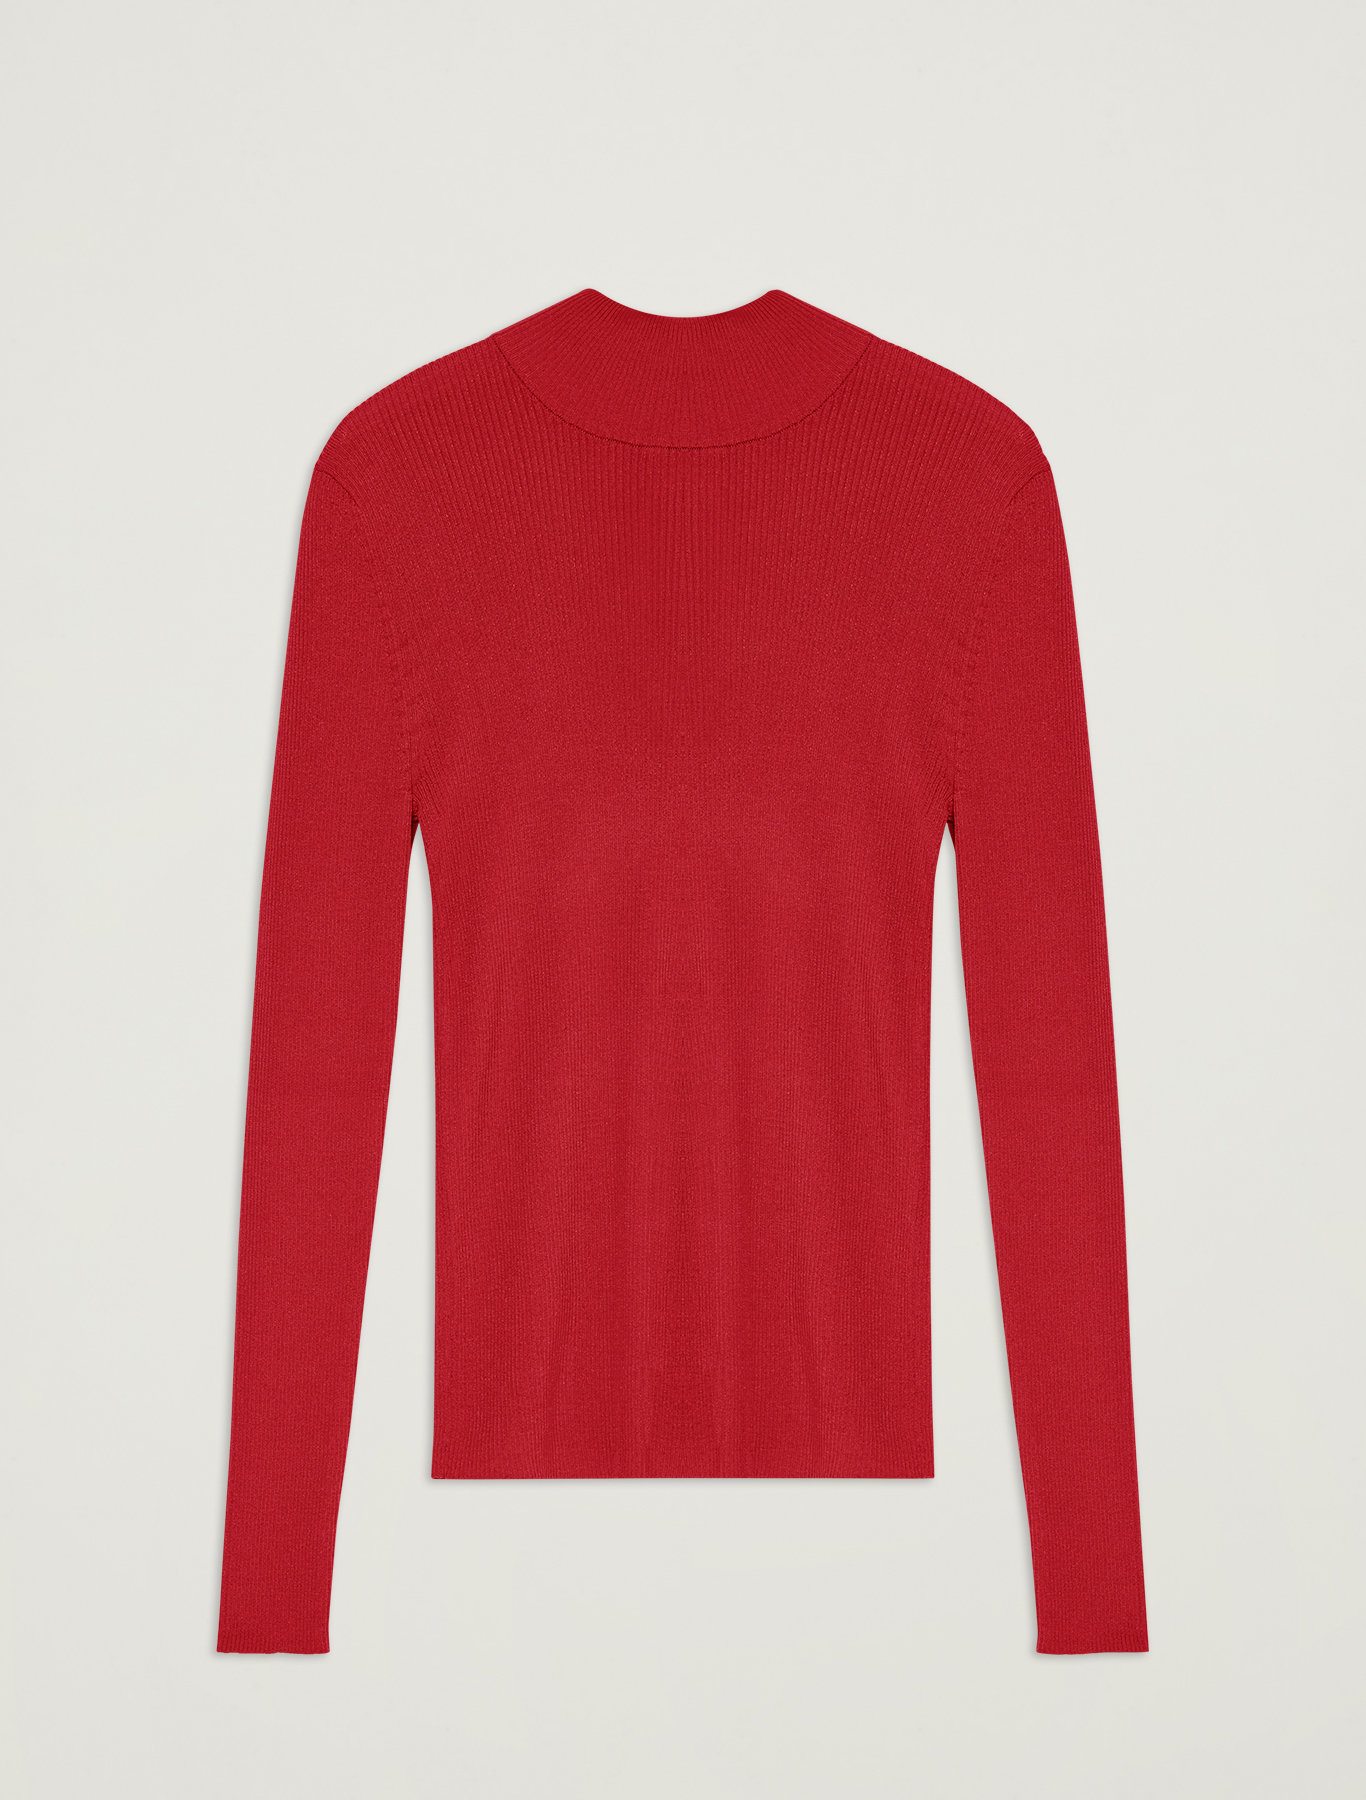 Ribbed knit turtleneck - red - pennyblack